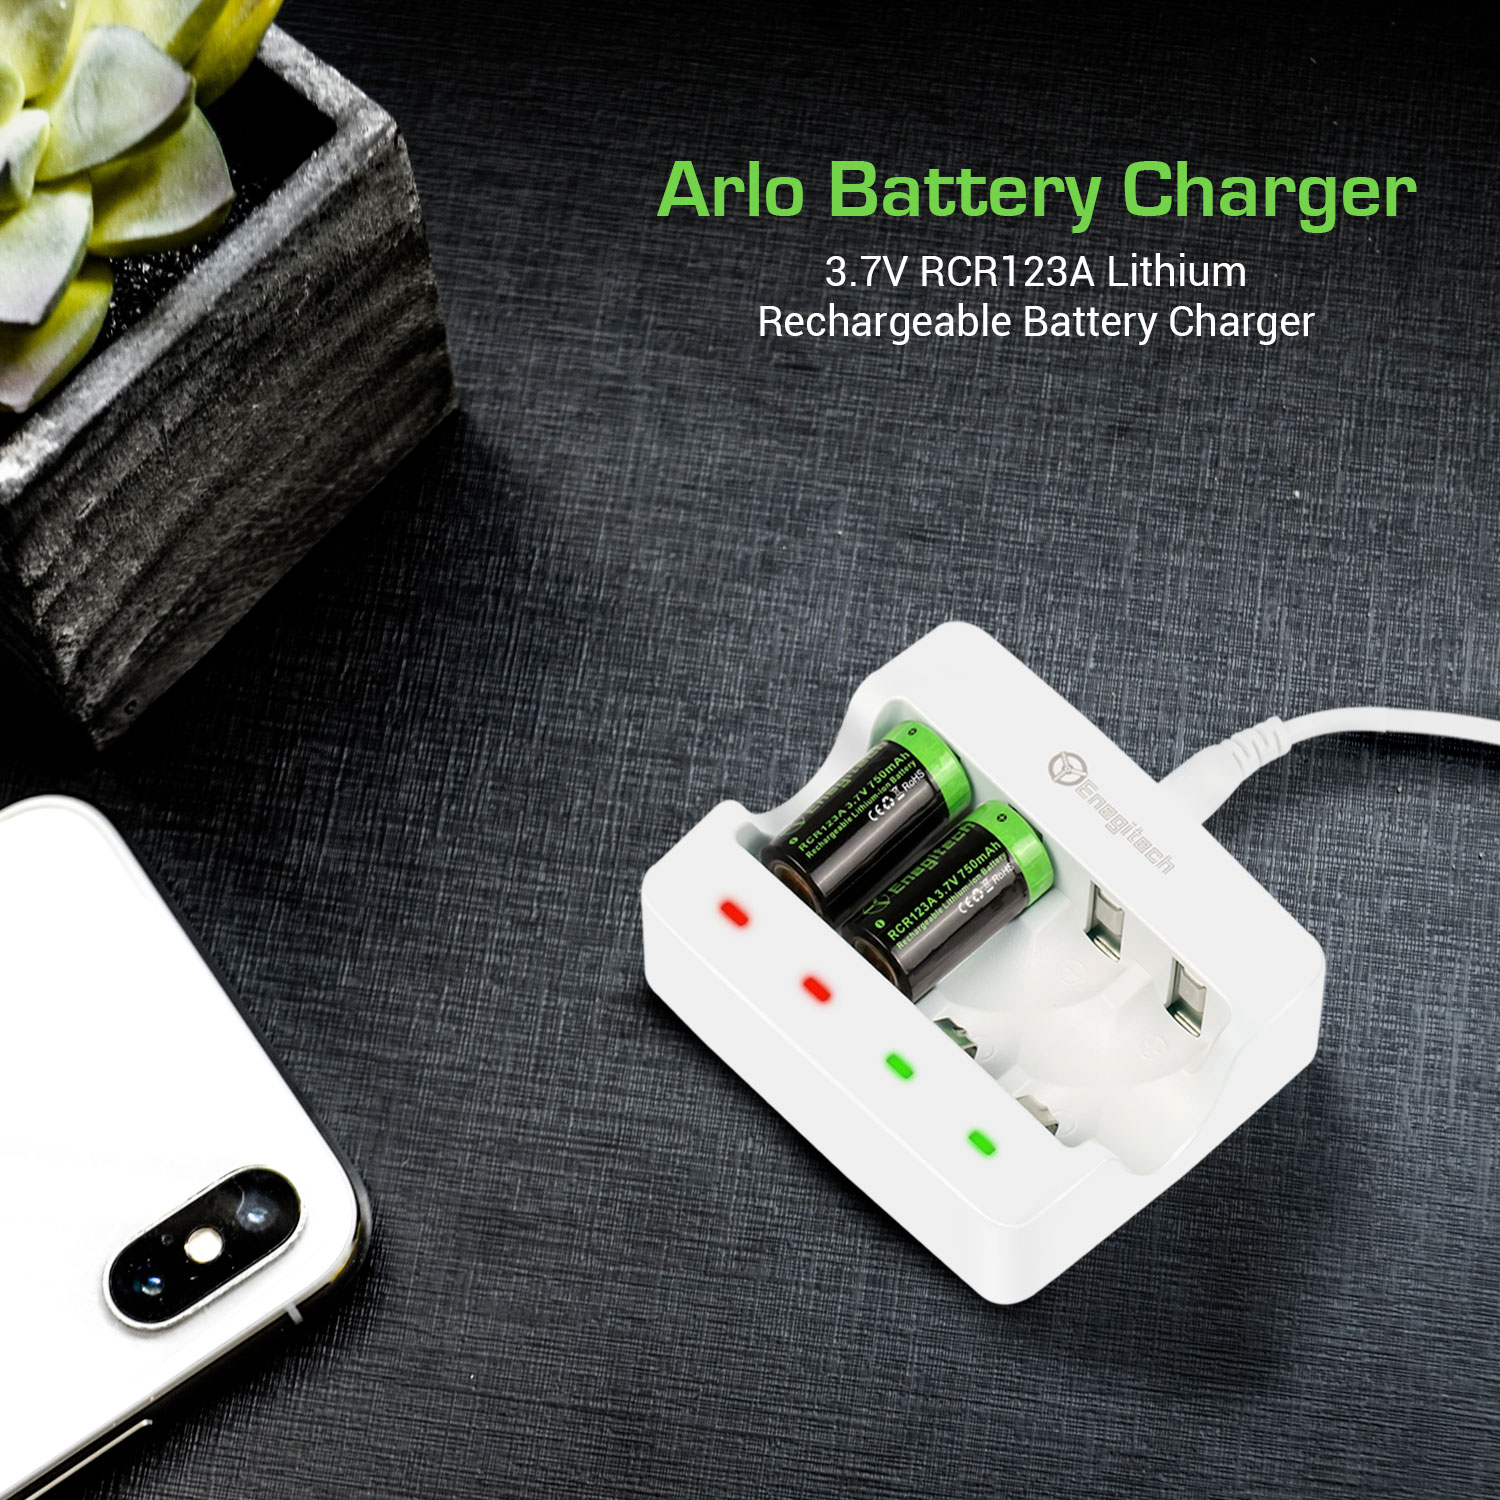 Rechargeable battery and charger